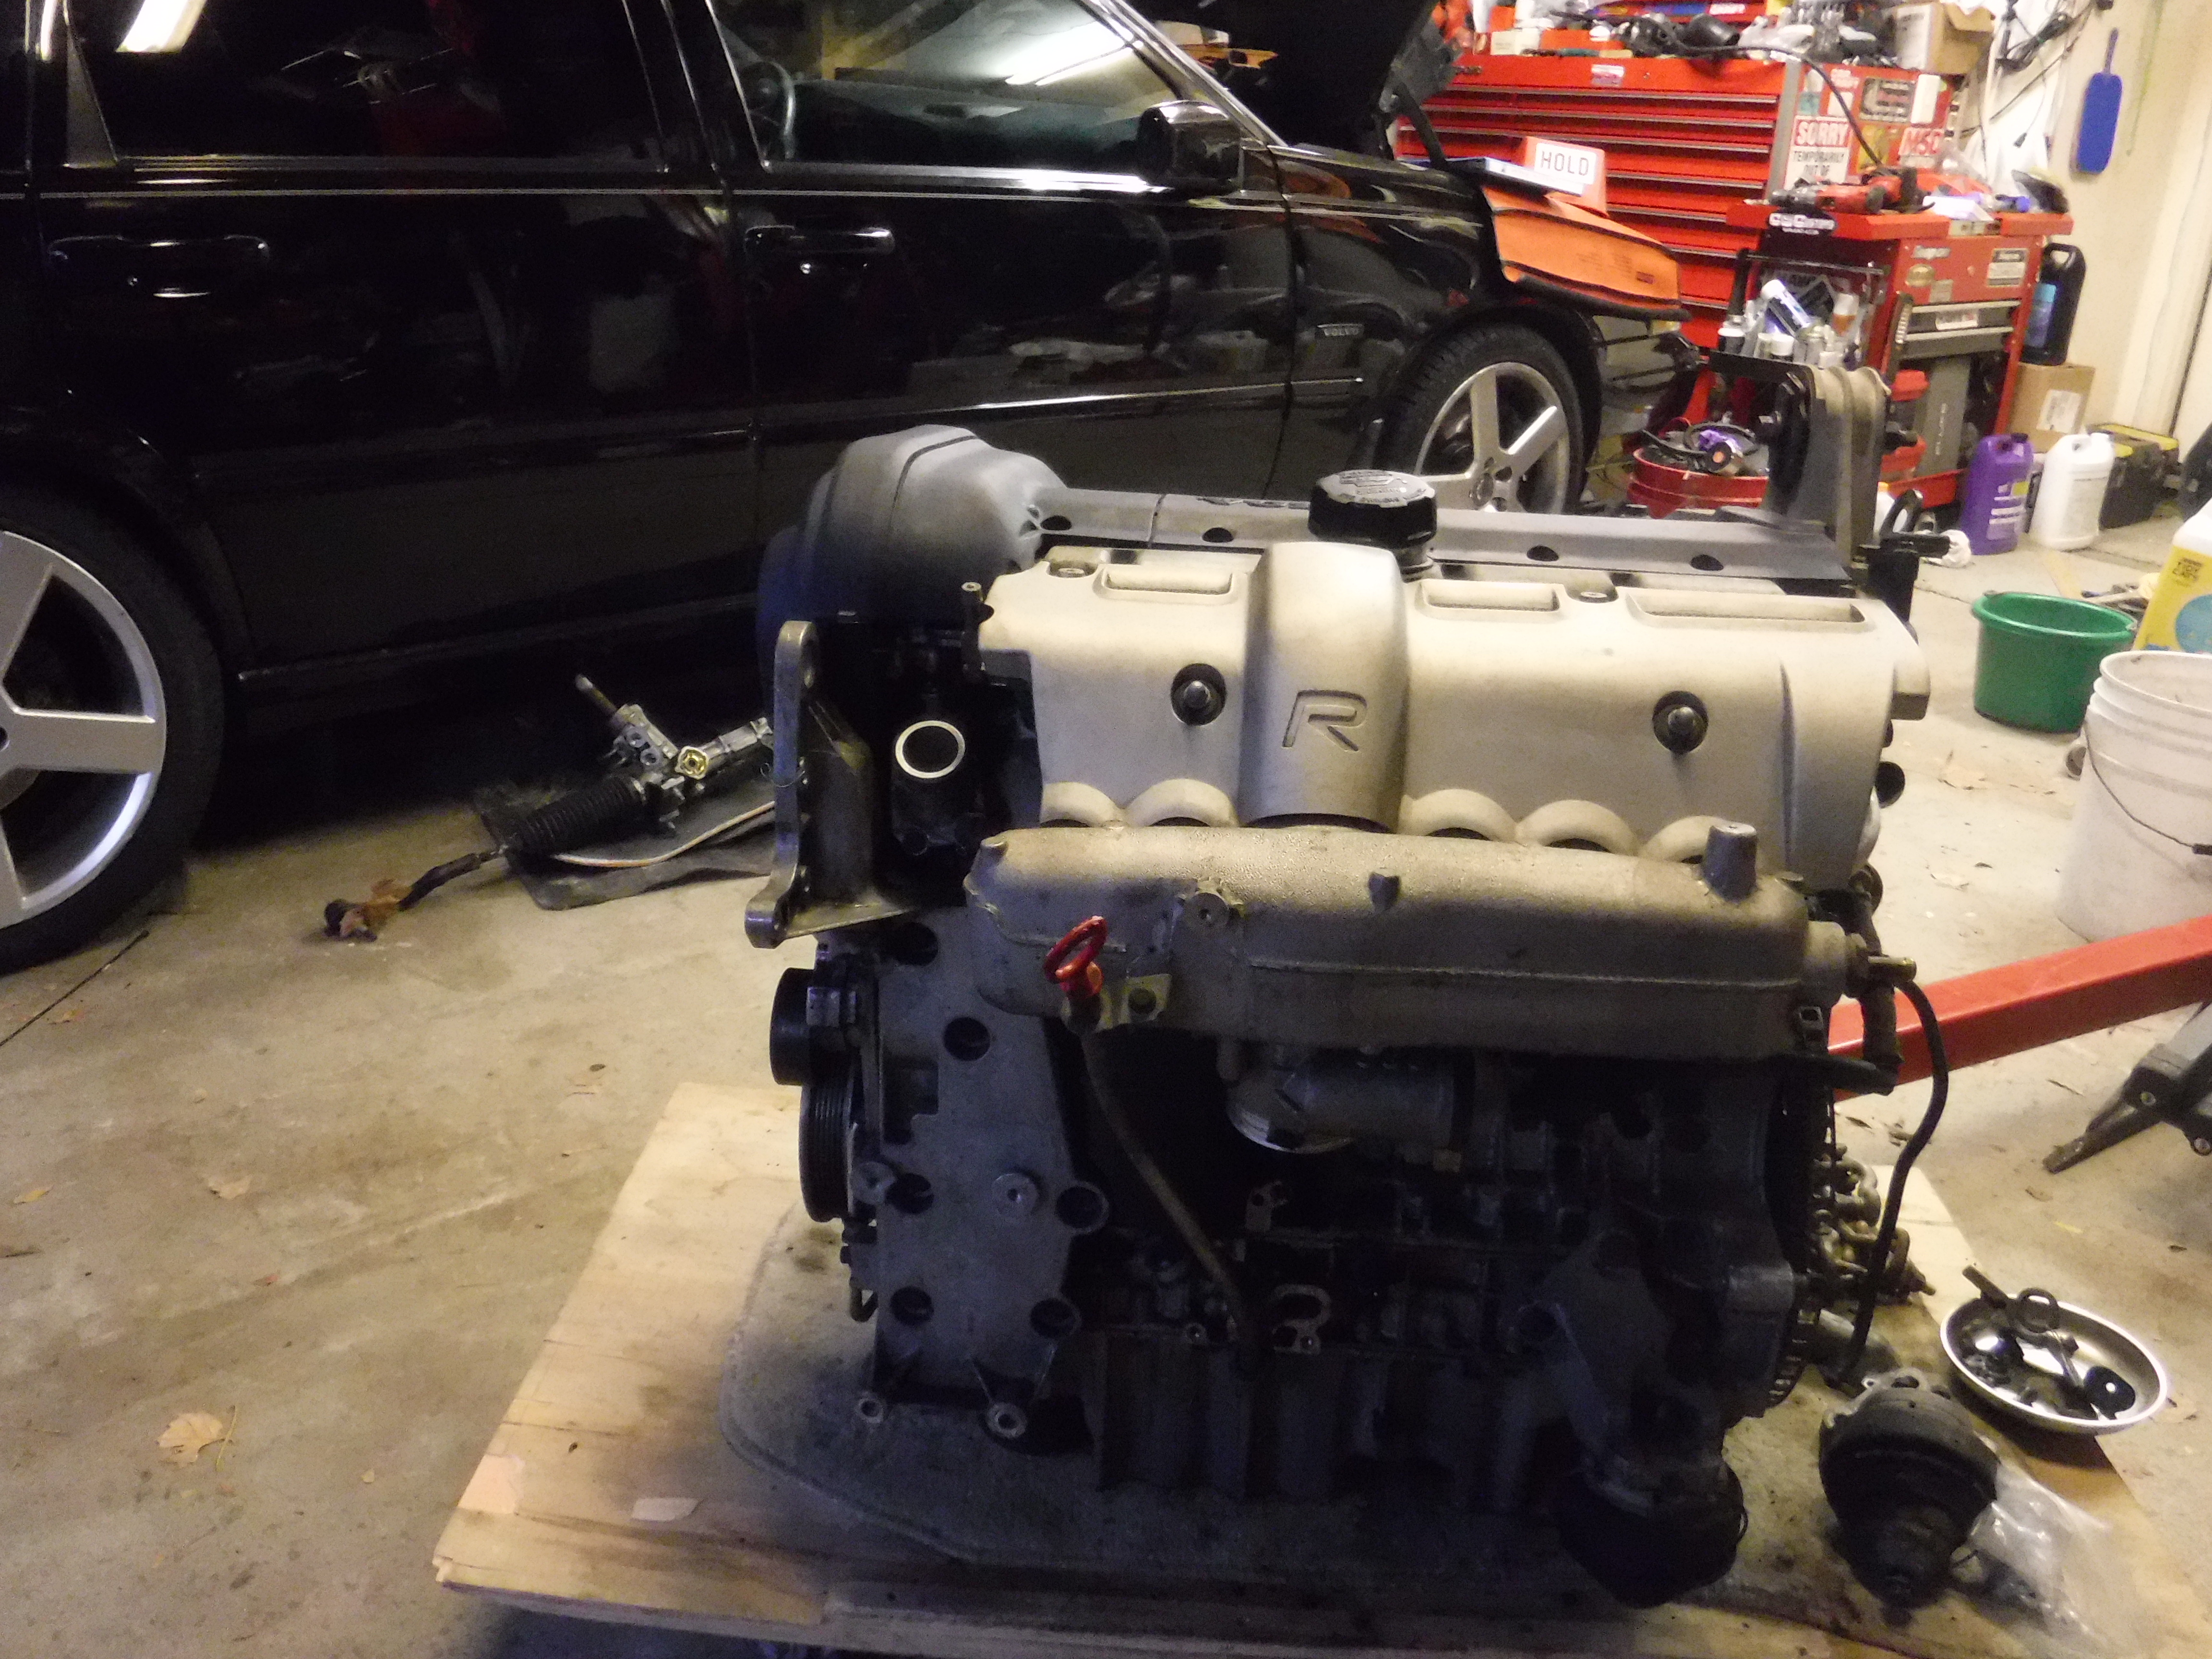 RN swap to begin - Performance Modifications - Volvospeed Forums